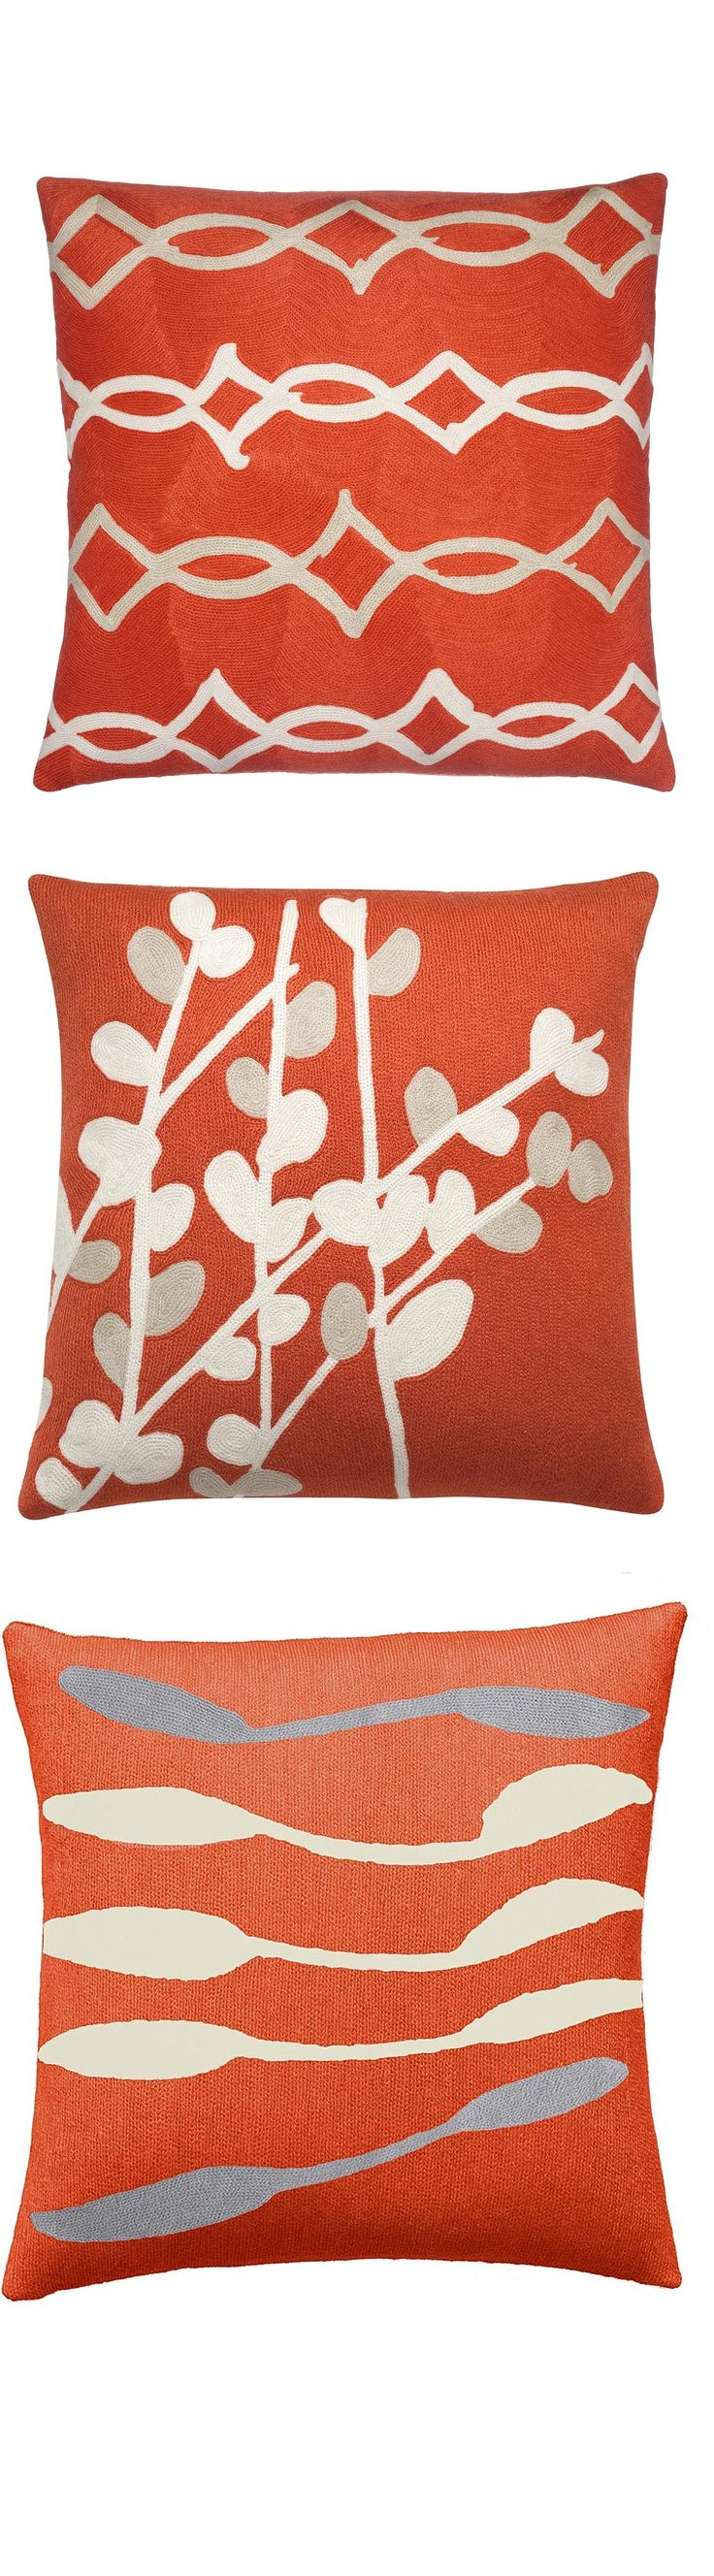 Orange Decorative Pillows Couch : 9 best images about Orange Pillows on Pinterest Sofa pillows, Modern and Throw pillows